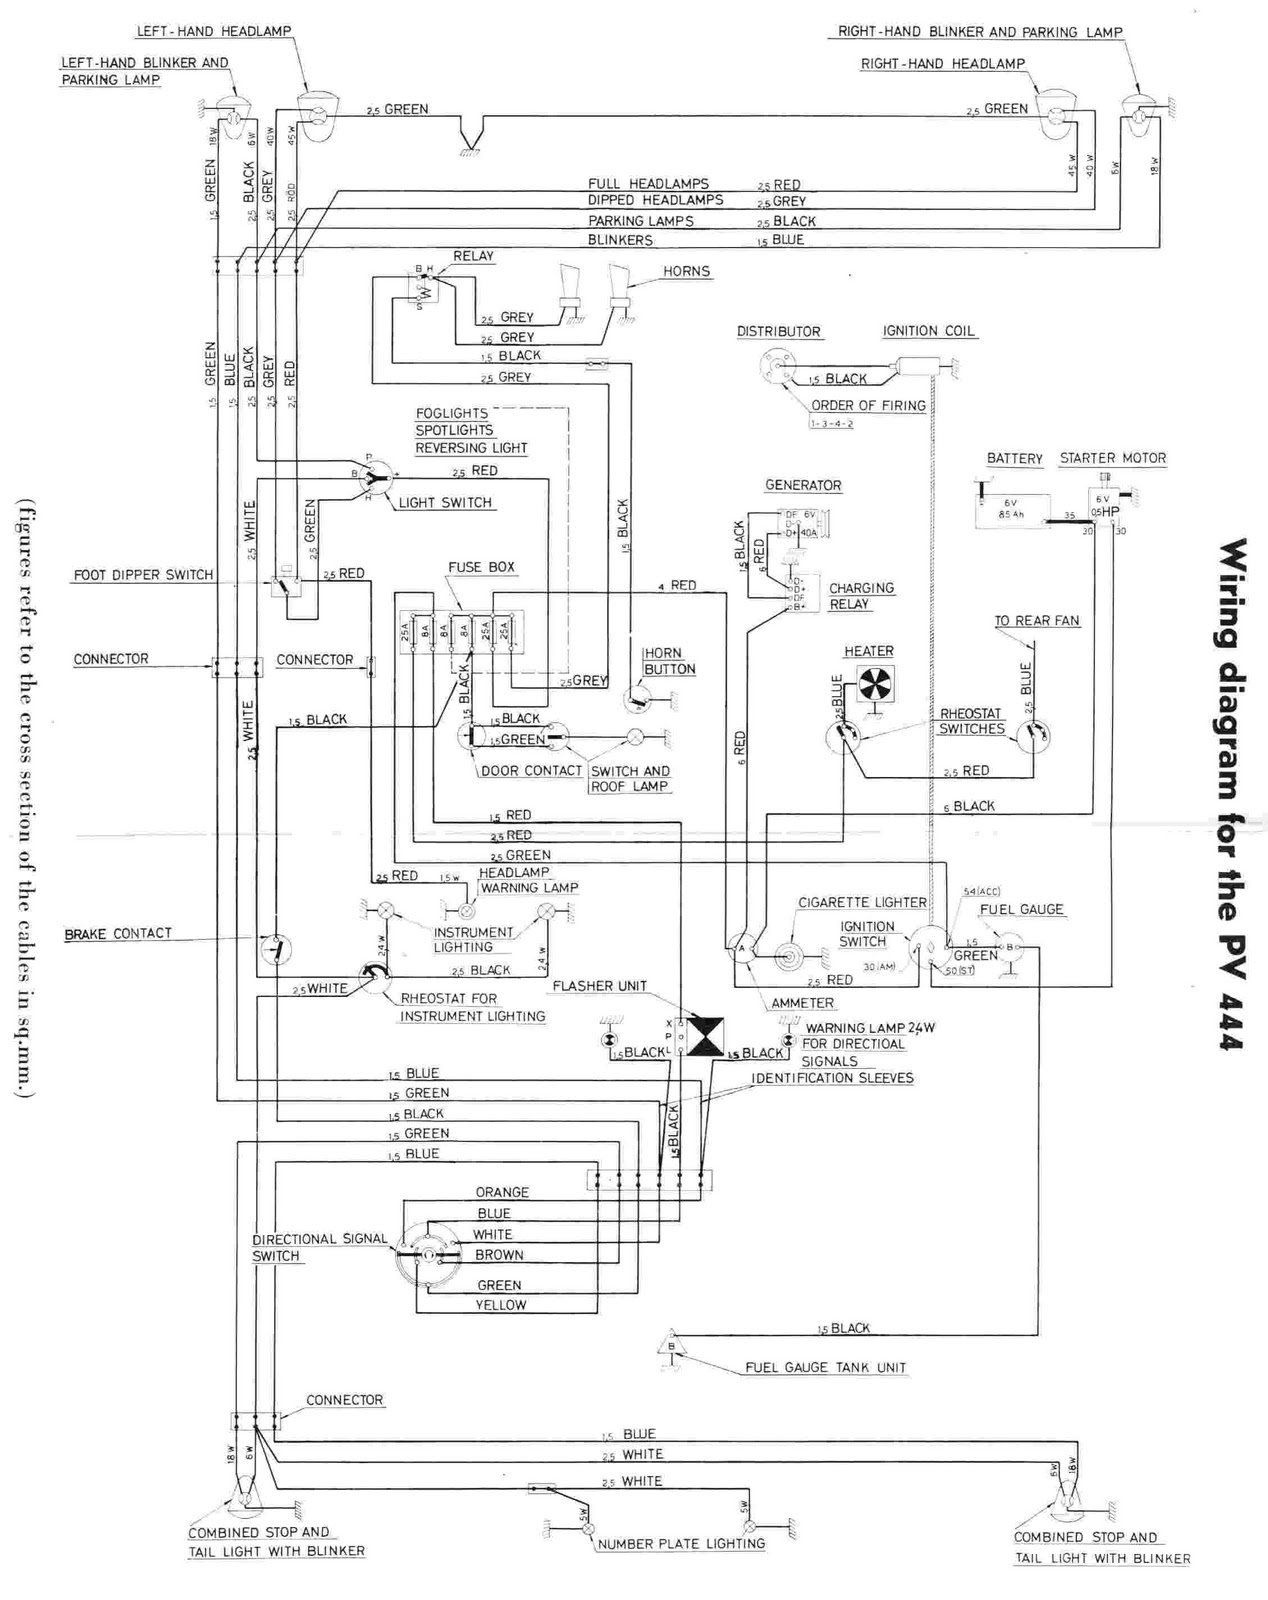 volvo tail light wiring diagram wiring diagram of volvo pv444 | all about wiring diagrams 84 chevy pickup tail light wiring diagram reverse light